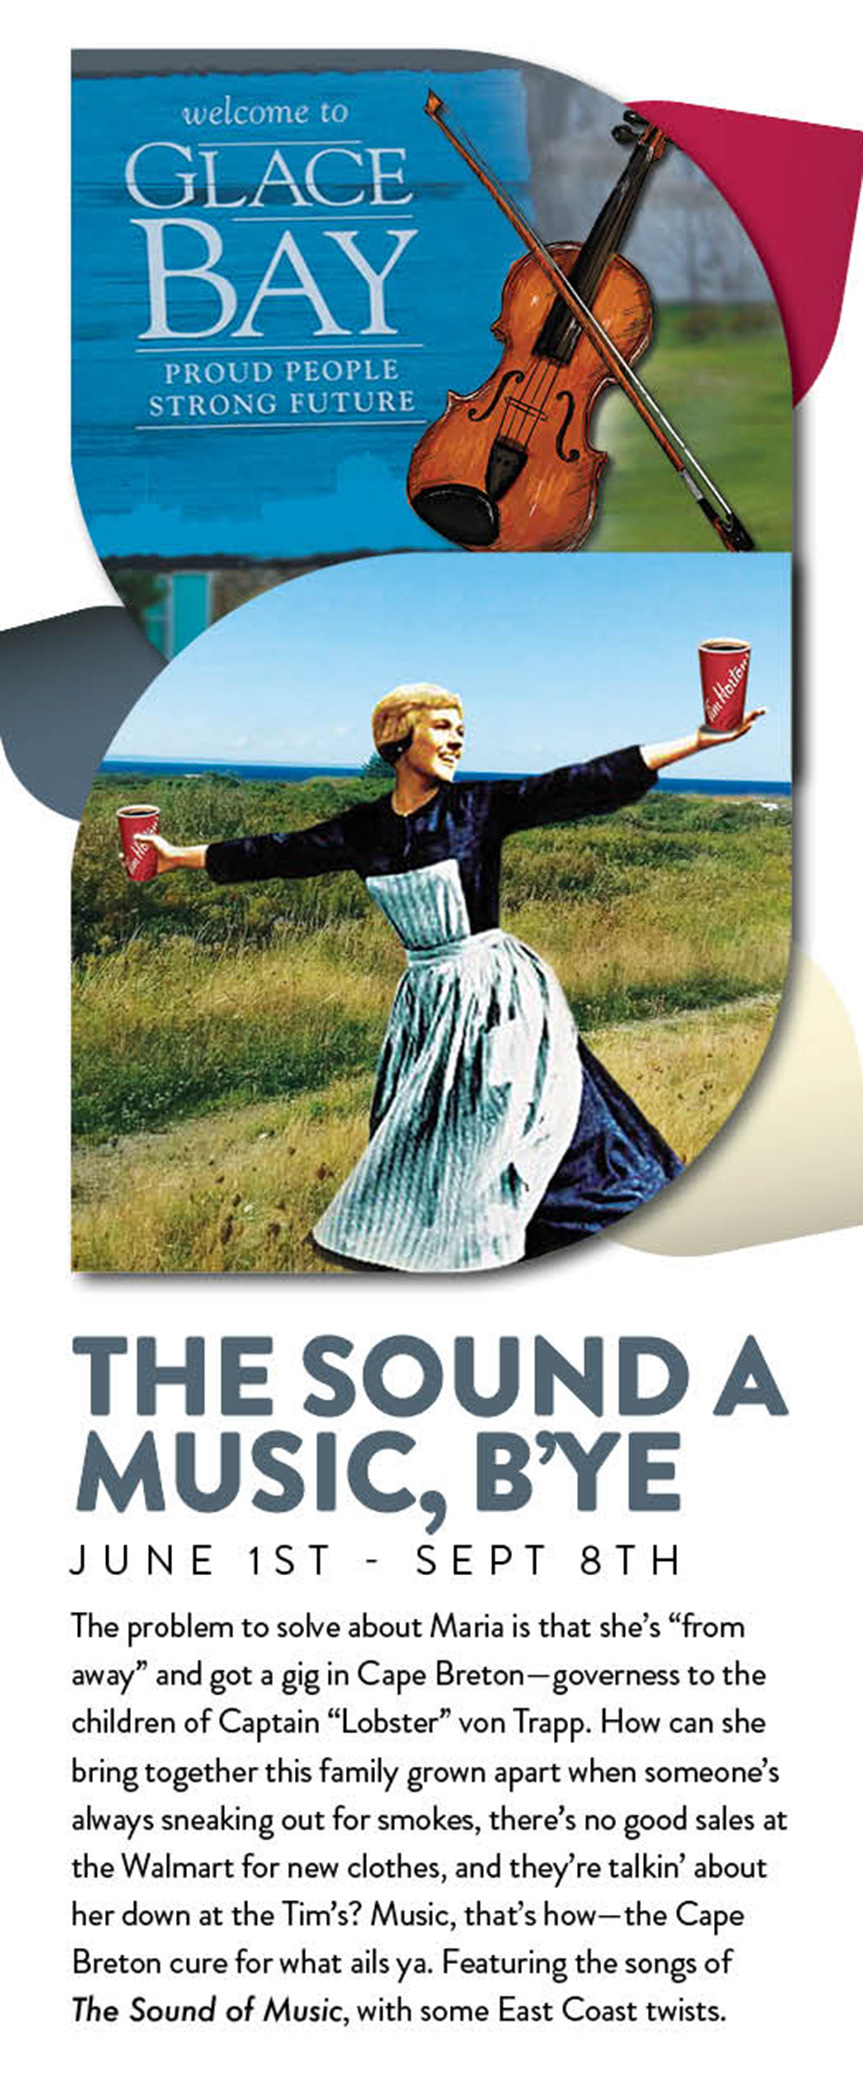 The Sound of Music, B'ye